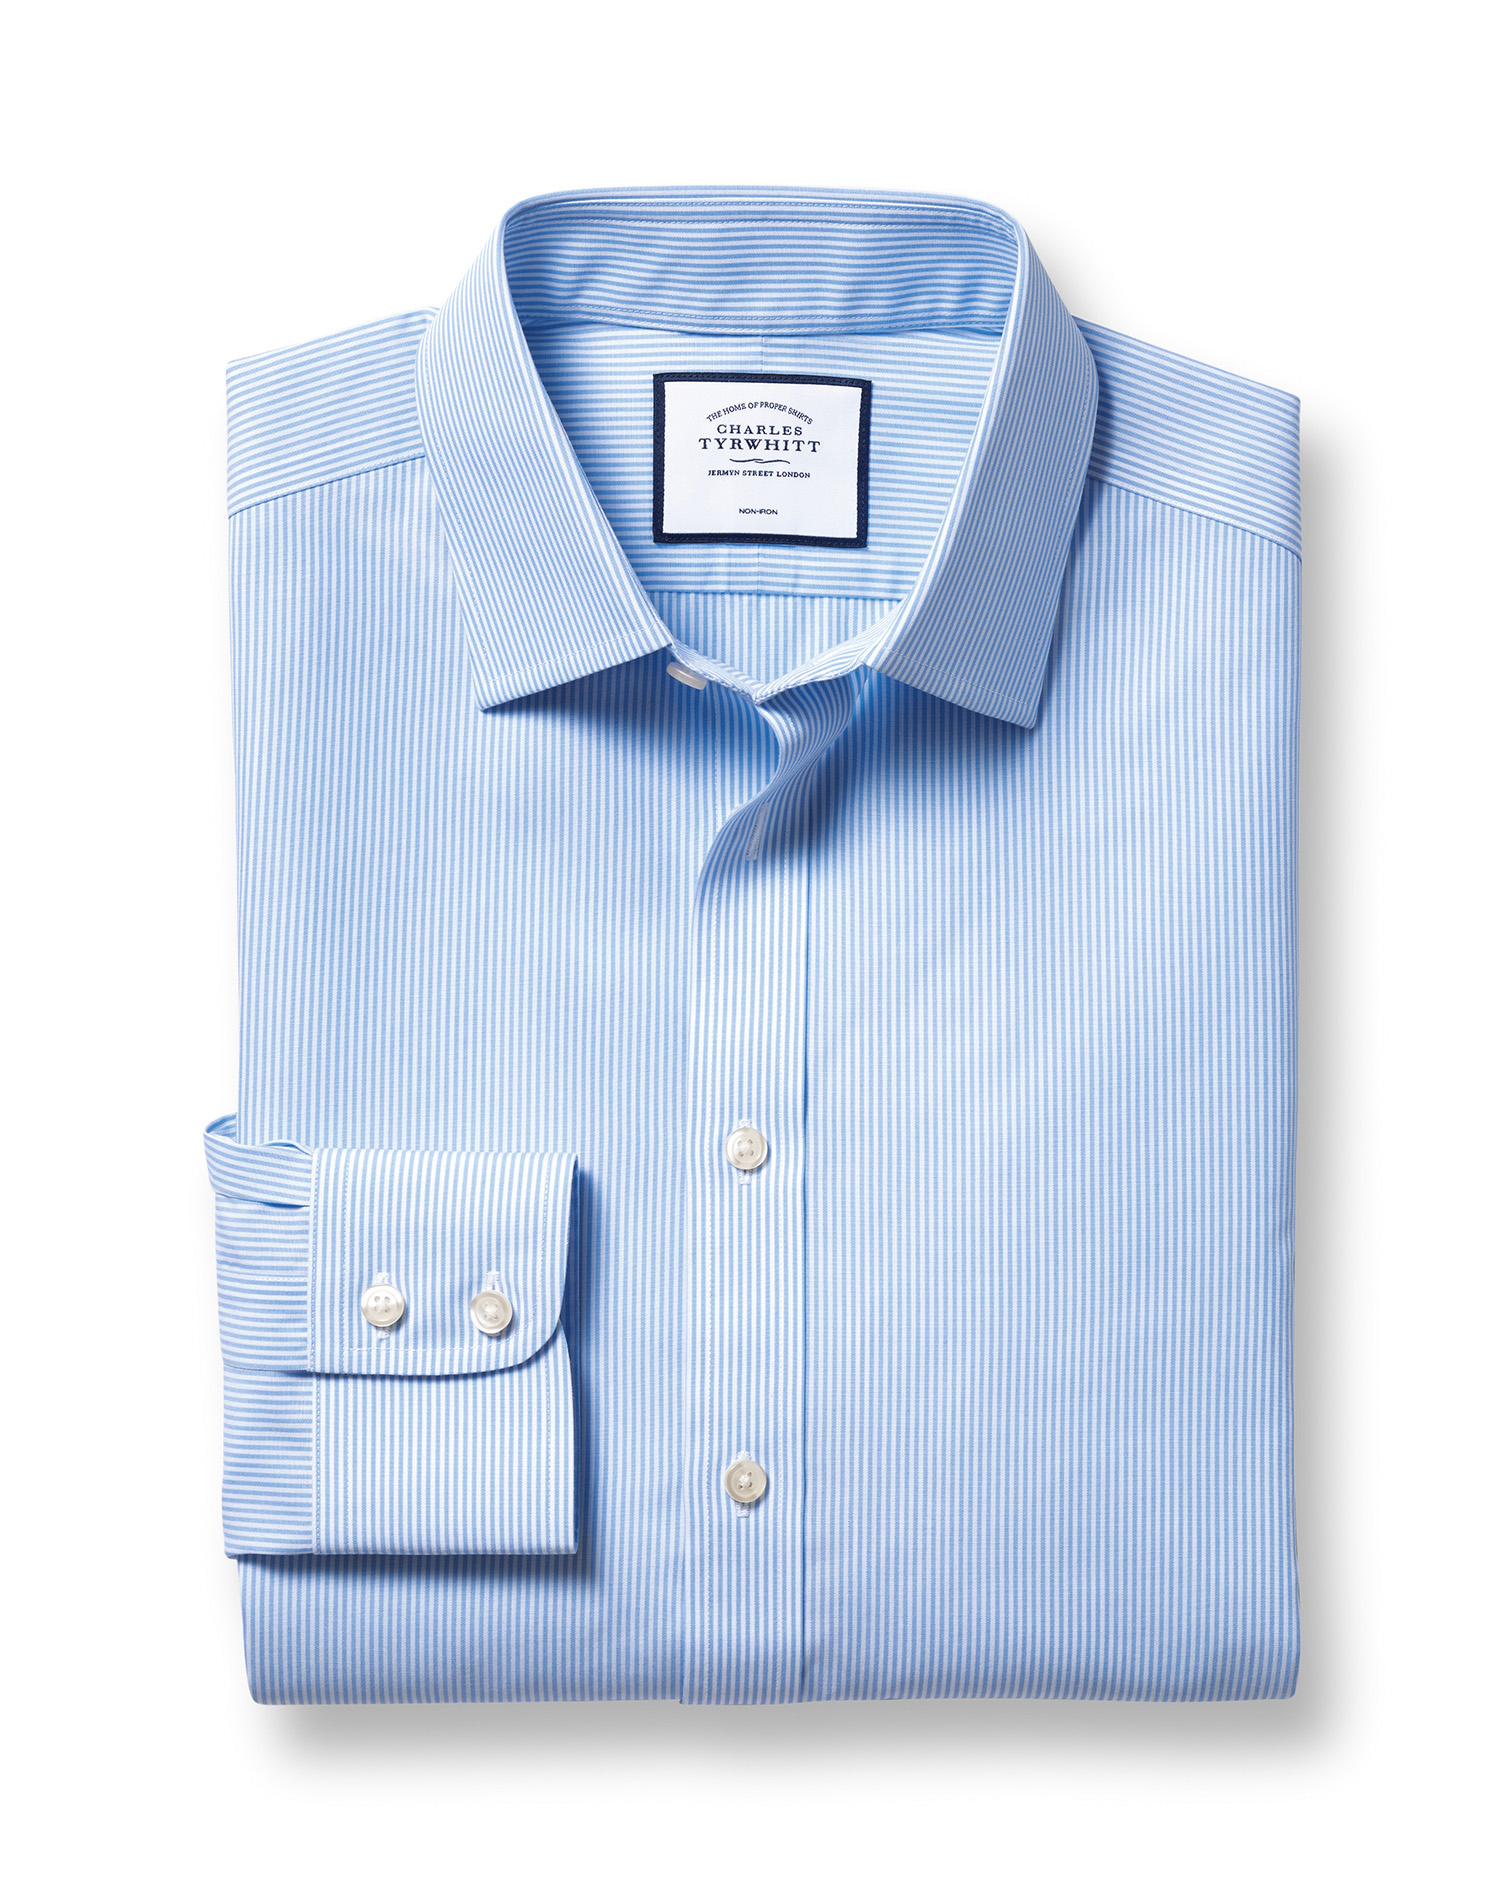 Slim Fit Non-Iron Bengal Stripe Sky Blue Cotton Formal Shirt Double Cuff Size 17/36 by Charles Tyrwh